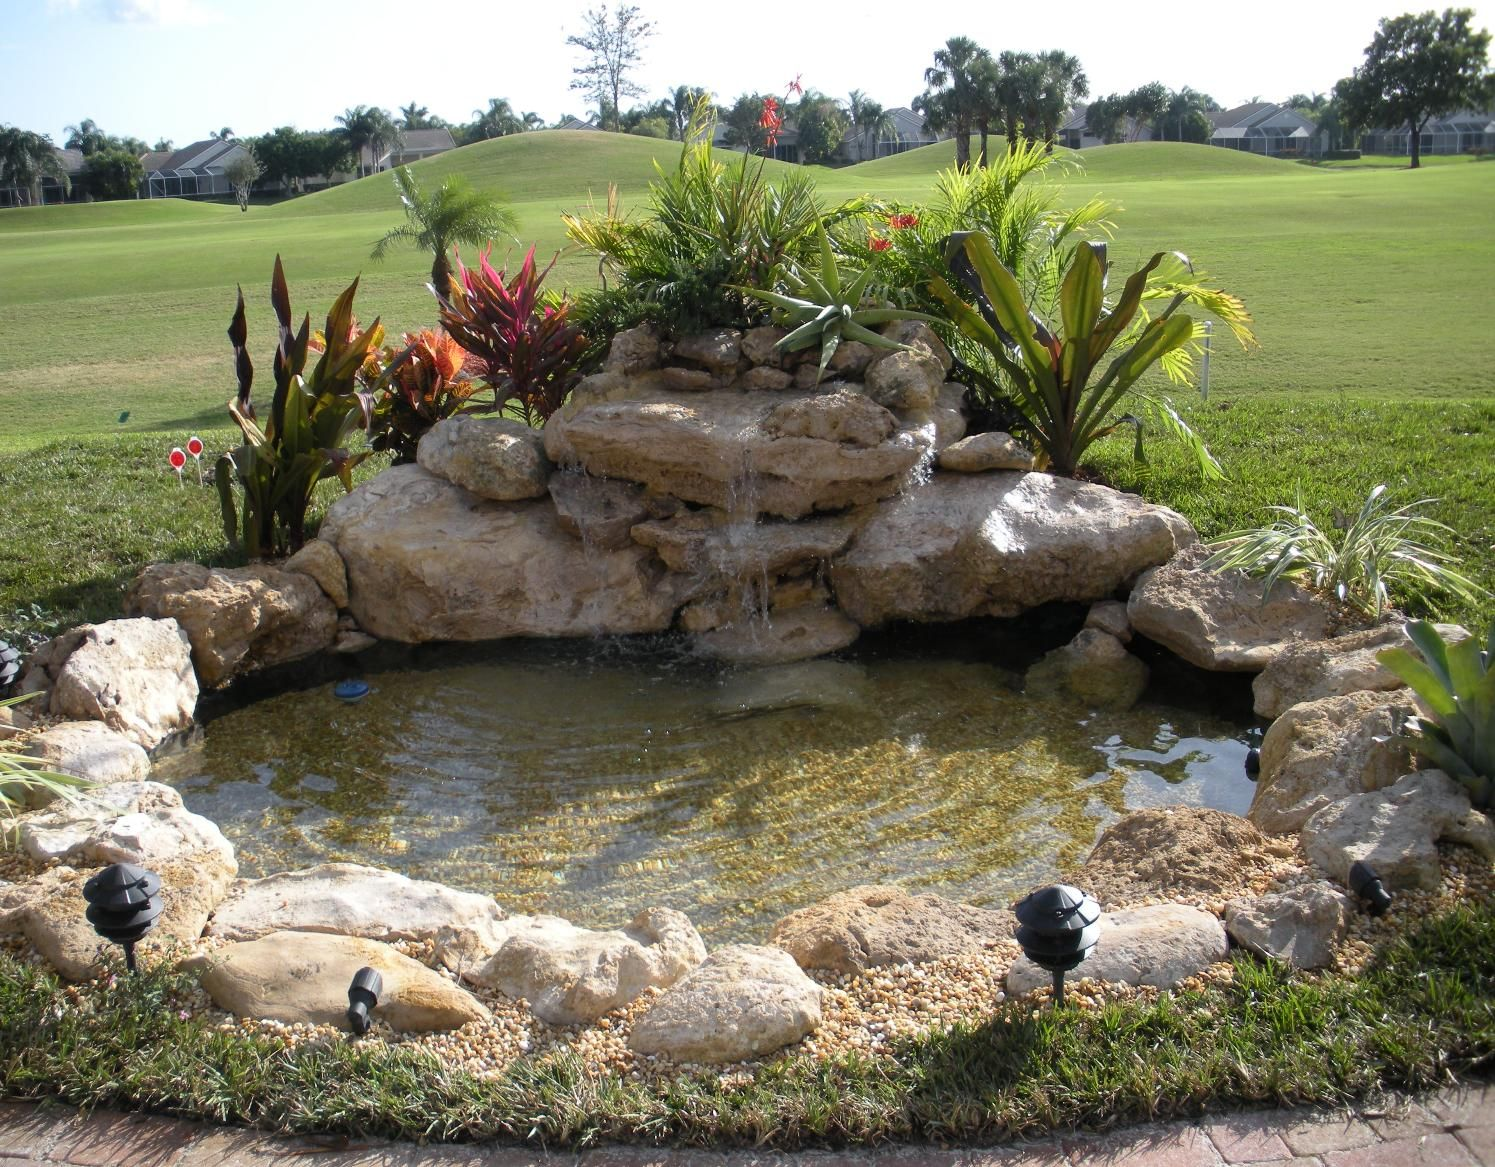 Landscaping waterfalls and fish ponds ways to maintain for Outdoor goldfish pond ideas